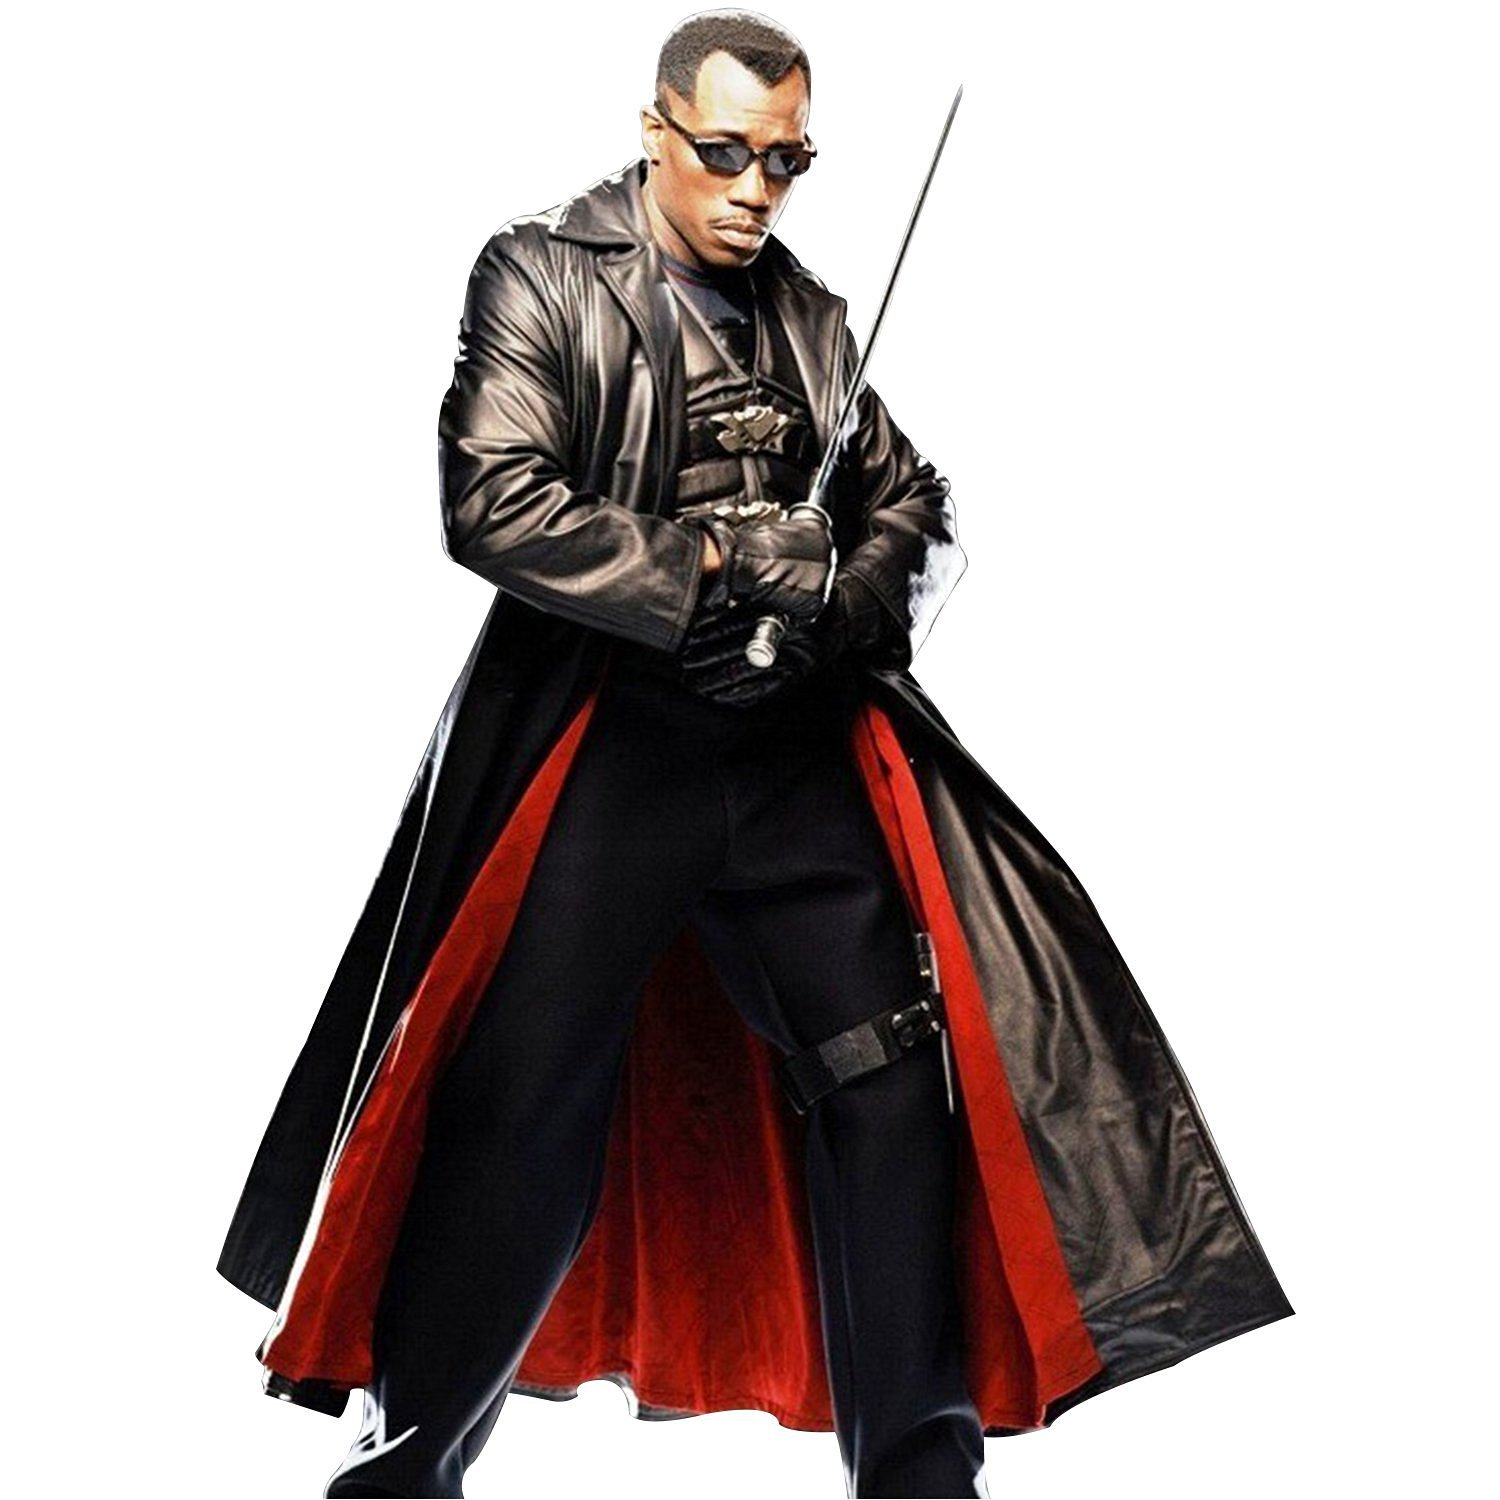 Blade (Film version)